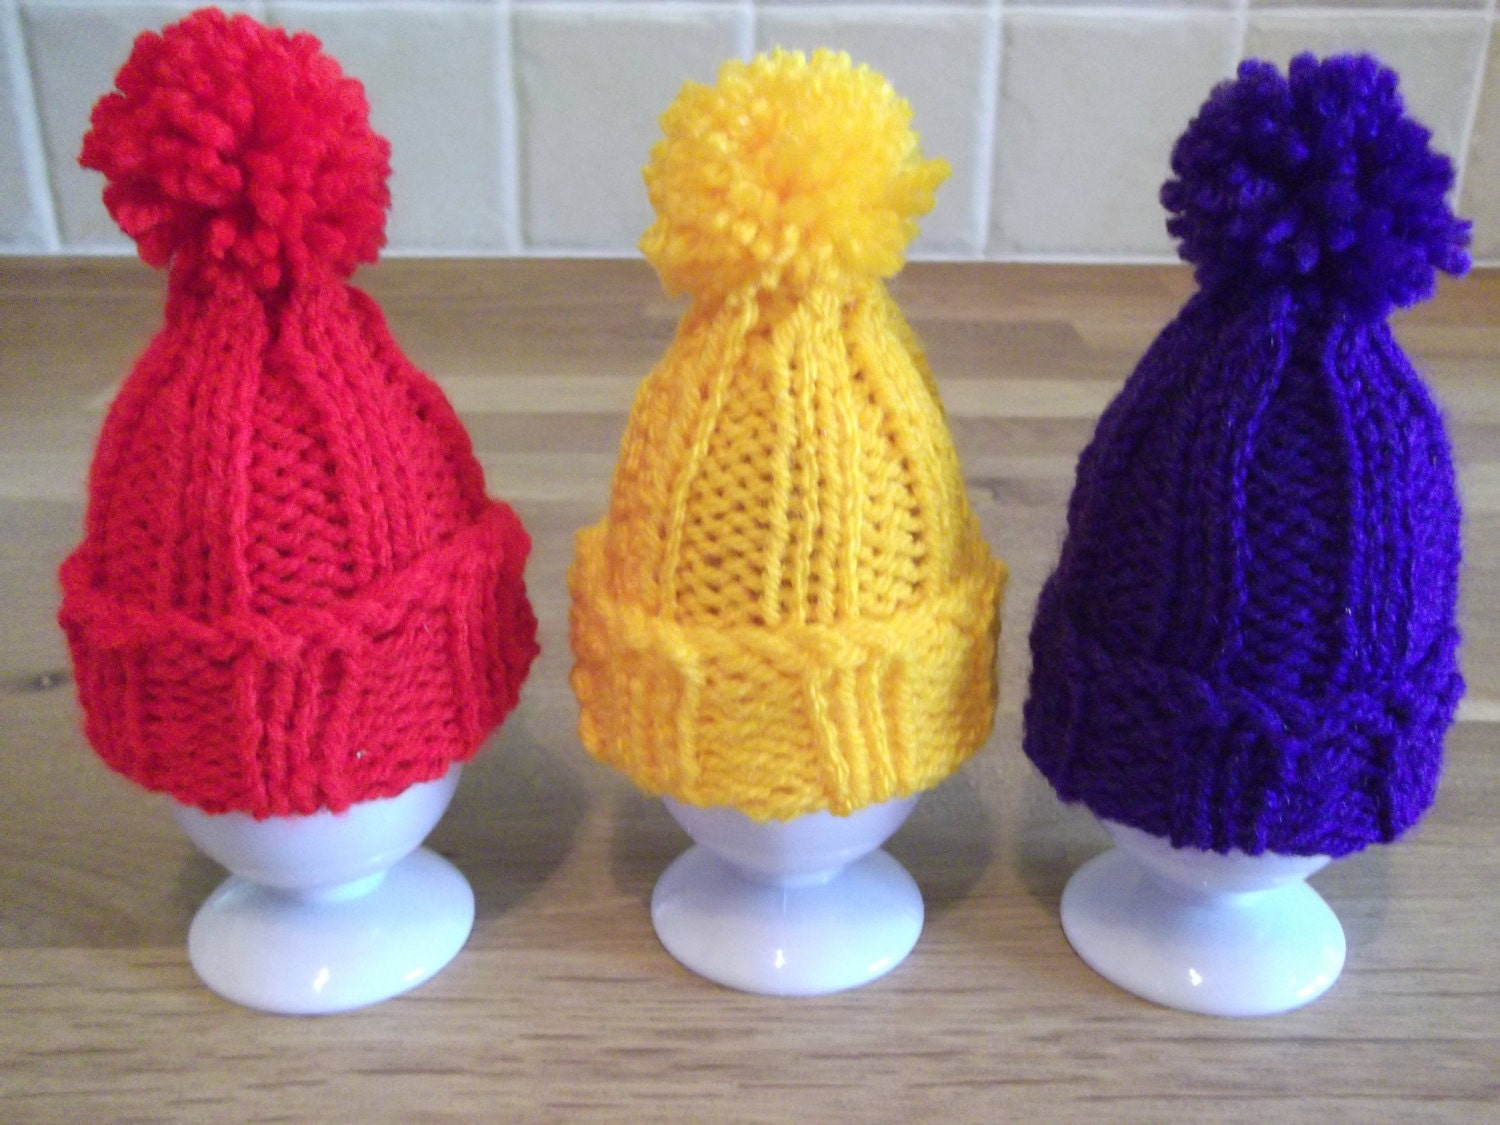 Easter Egg Cosy Knitting Pattern : Knitting pattern Egg Cosy Tiny Pompom Hat. by LoopsandLavender